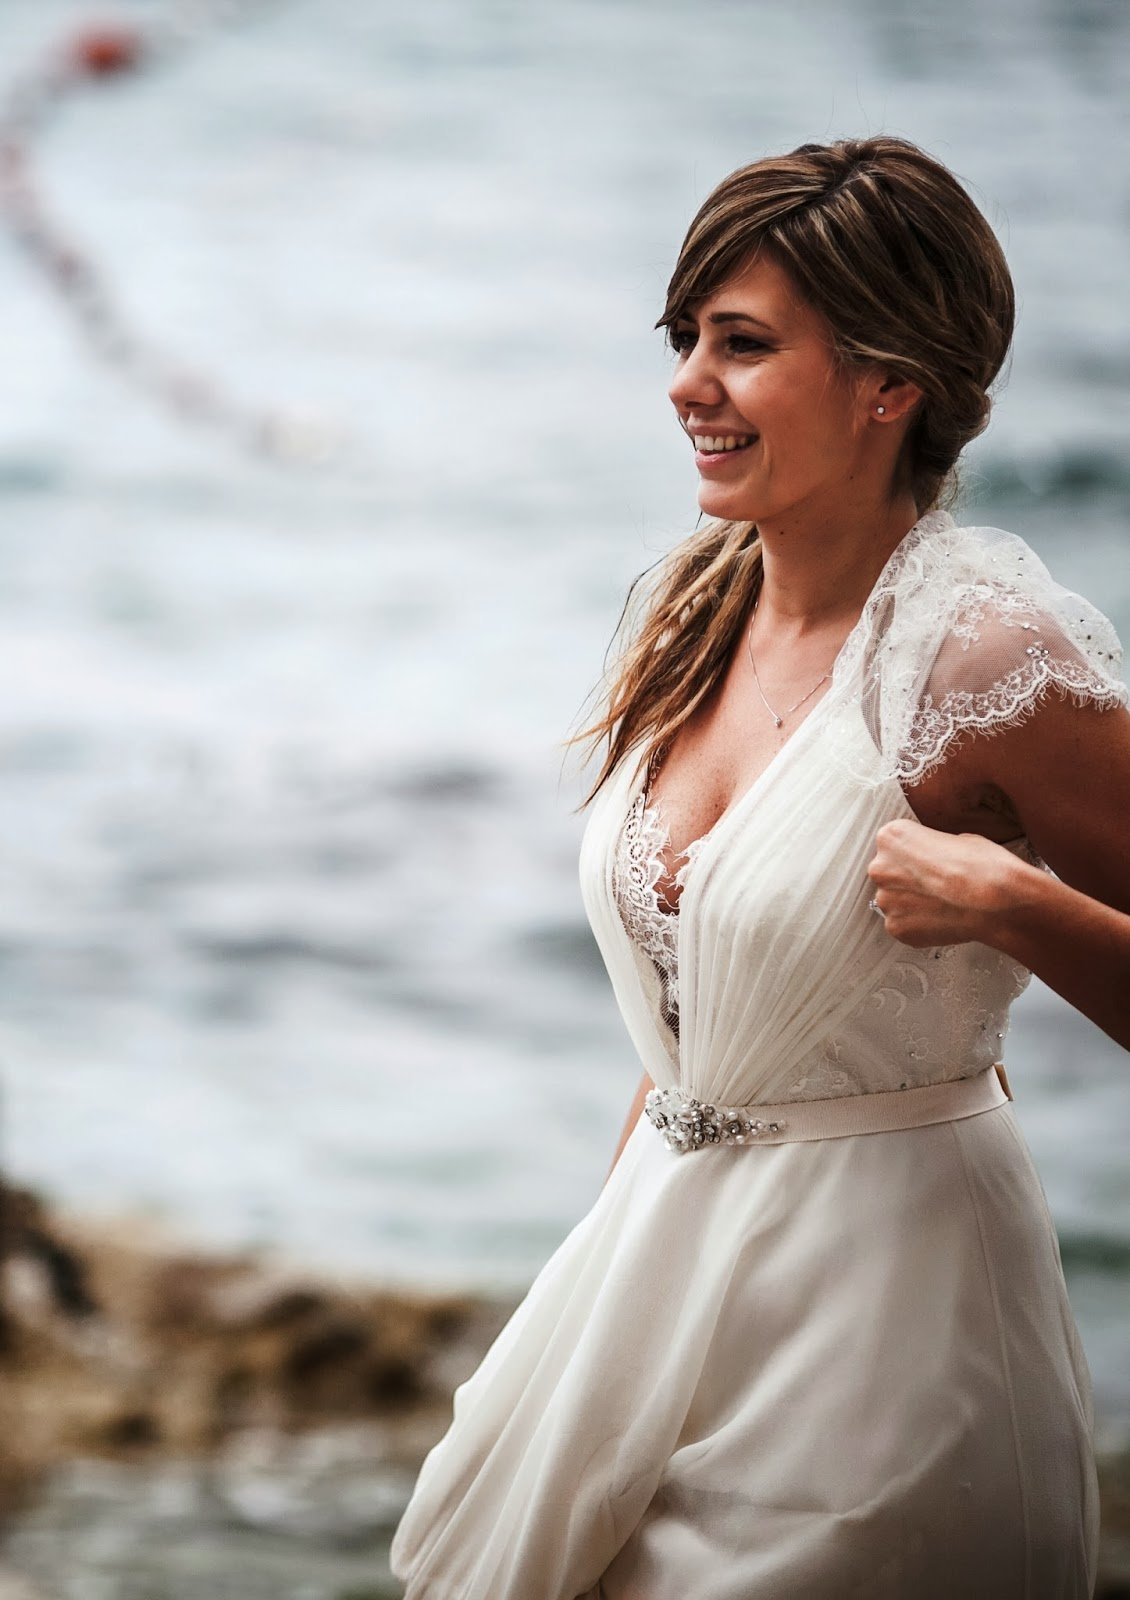 Matrimonio tra il vintage e il country chic - image jenny4 on http://www.designedoo.it